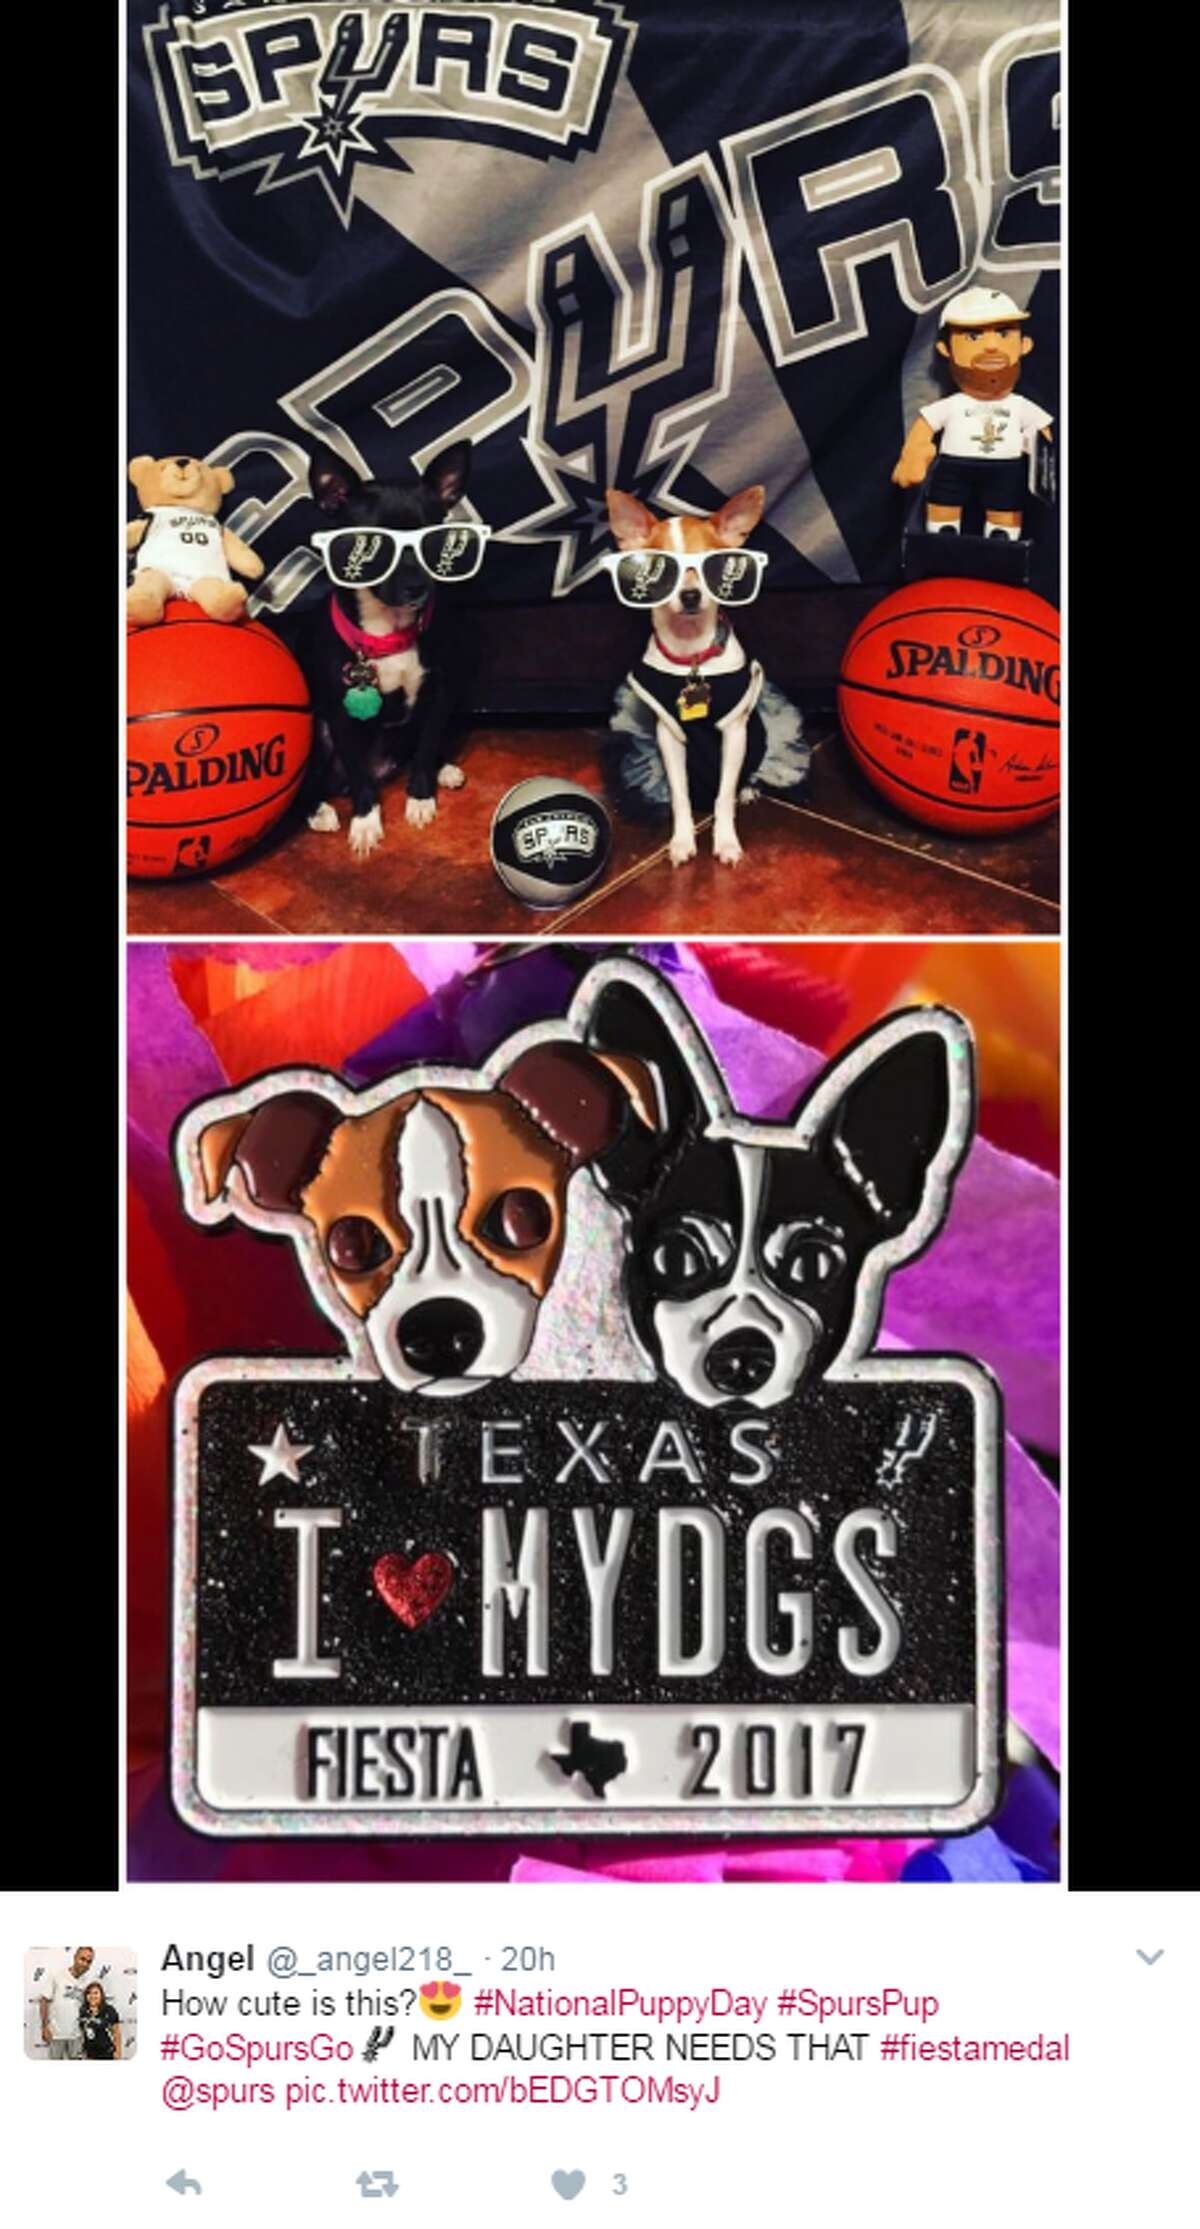 @_angel218_: How cute is this? #NationalPuppyDay #SpursPup #GoSpursGo MY DAUGHTER NEEDS THAT #fiestamedal @spurs